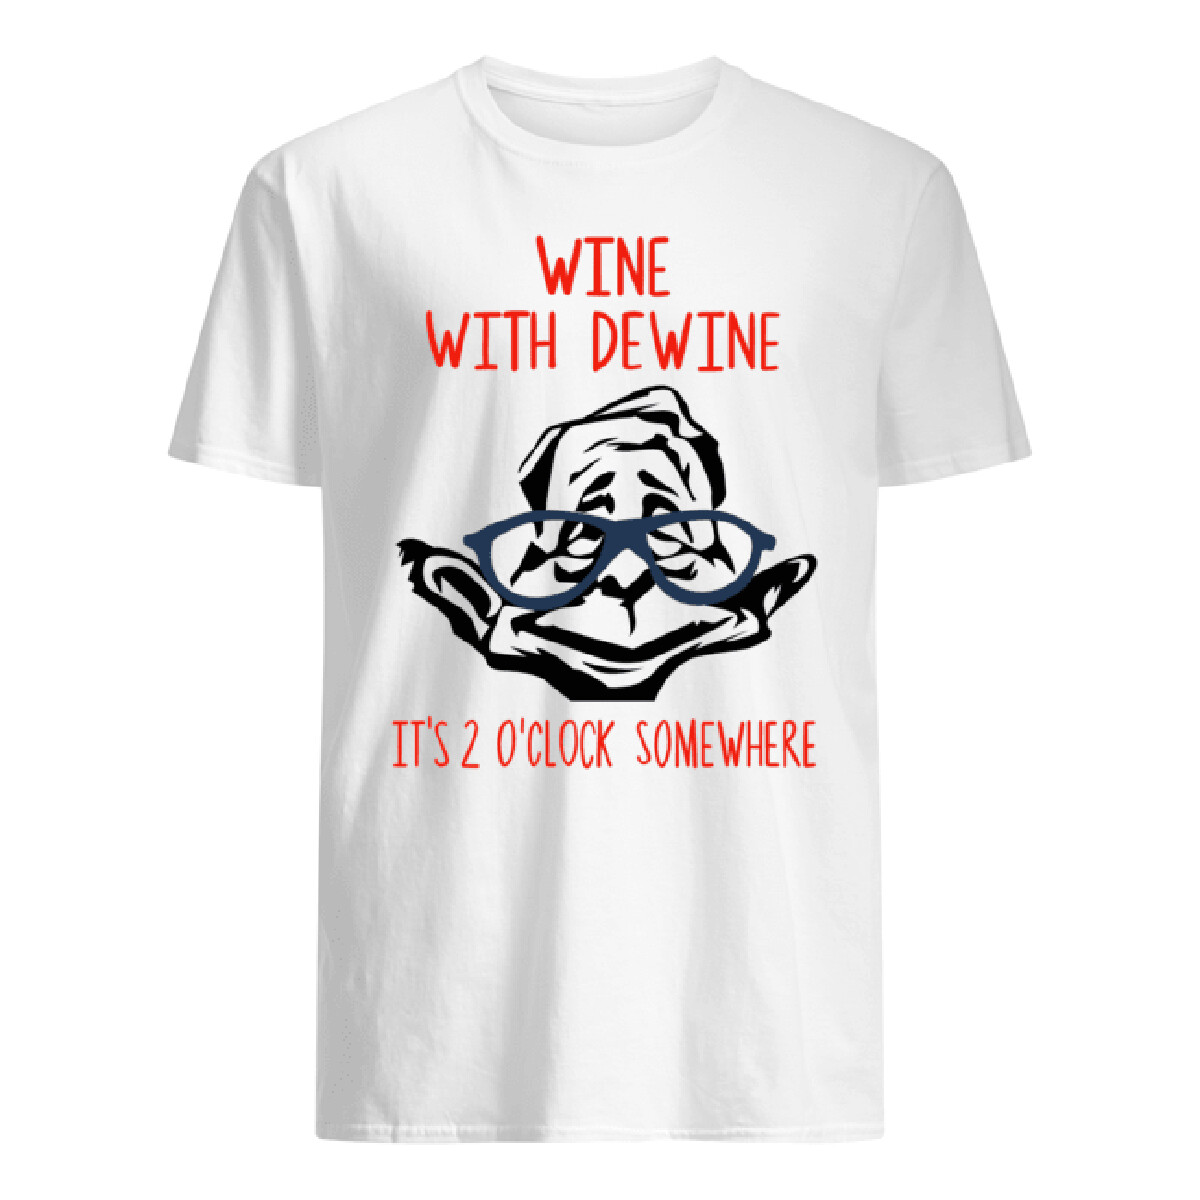 Costcotee Wine With Dewine It's 2 O'clock Somewhere T-Shirt Unisex Shirt Short-Sleeve Long-Sleeve V-Neck Tank Pullover Hoodie Sweatshirt Men Women Tee Gift